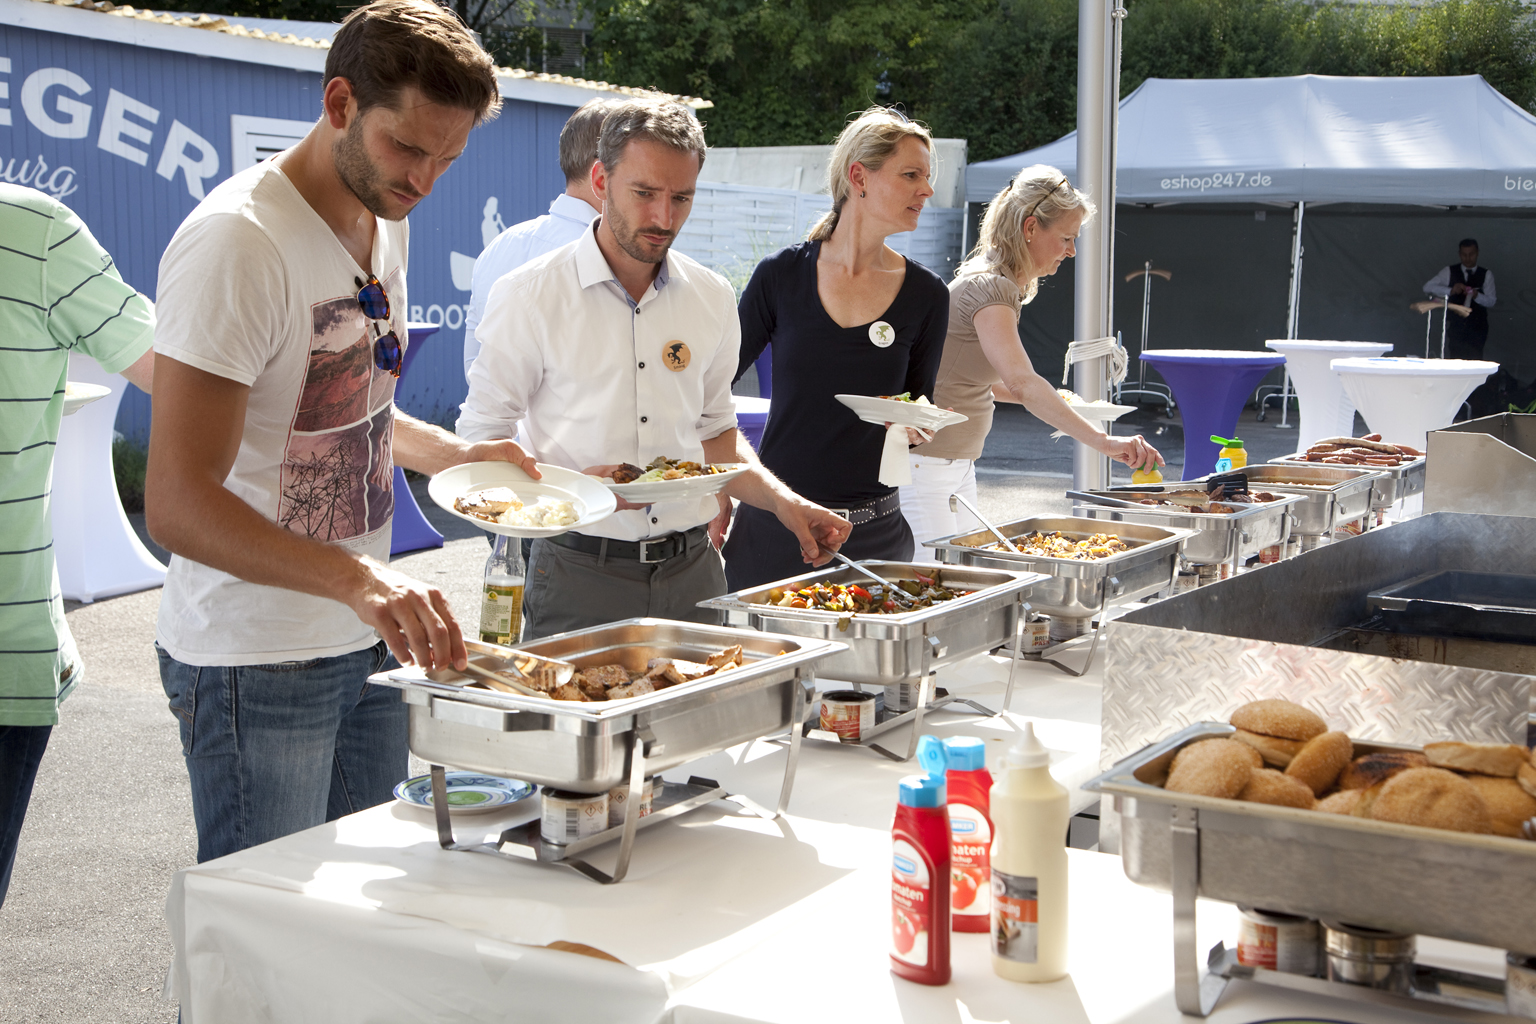 BBQ Buffet am Anleger Hamburg